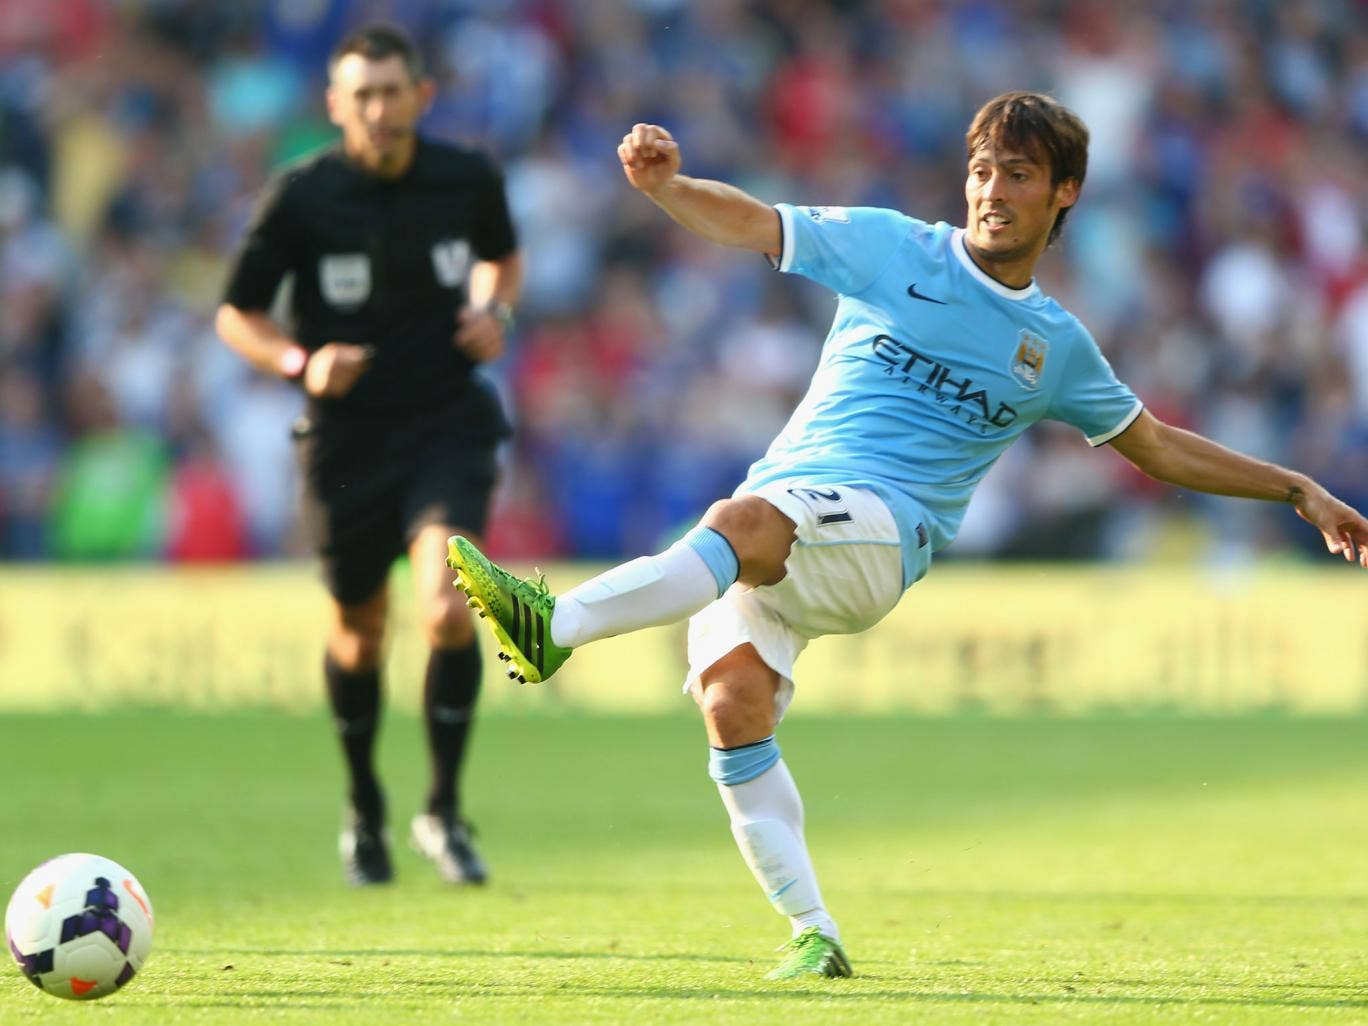 Manchester City midfielder David Silva has been ruled out of this weekend's clash with Stoke